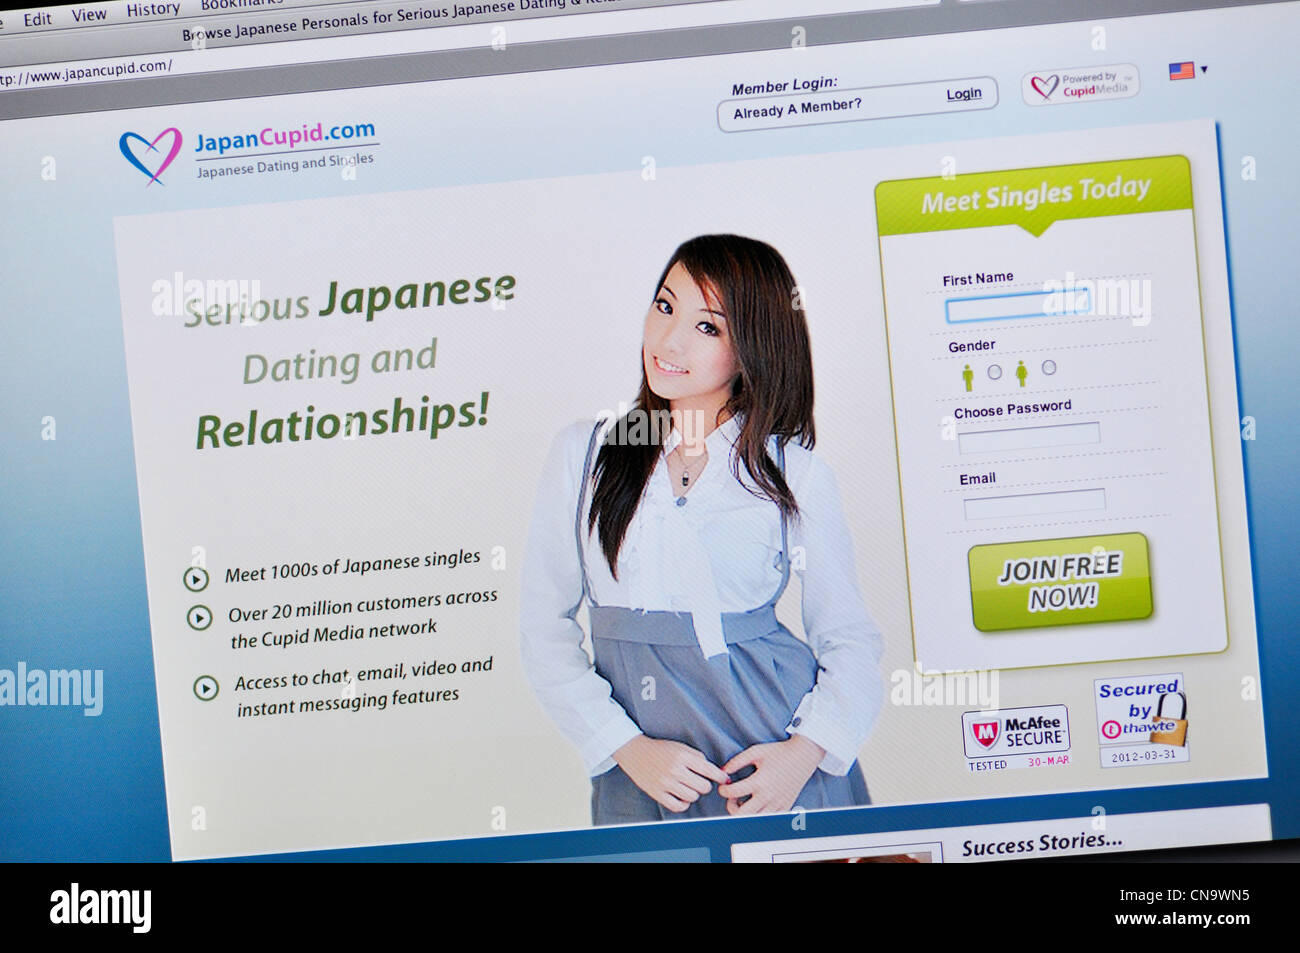 Online dating for japanese